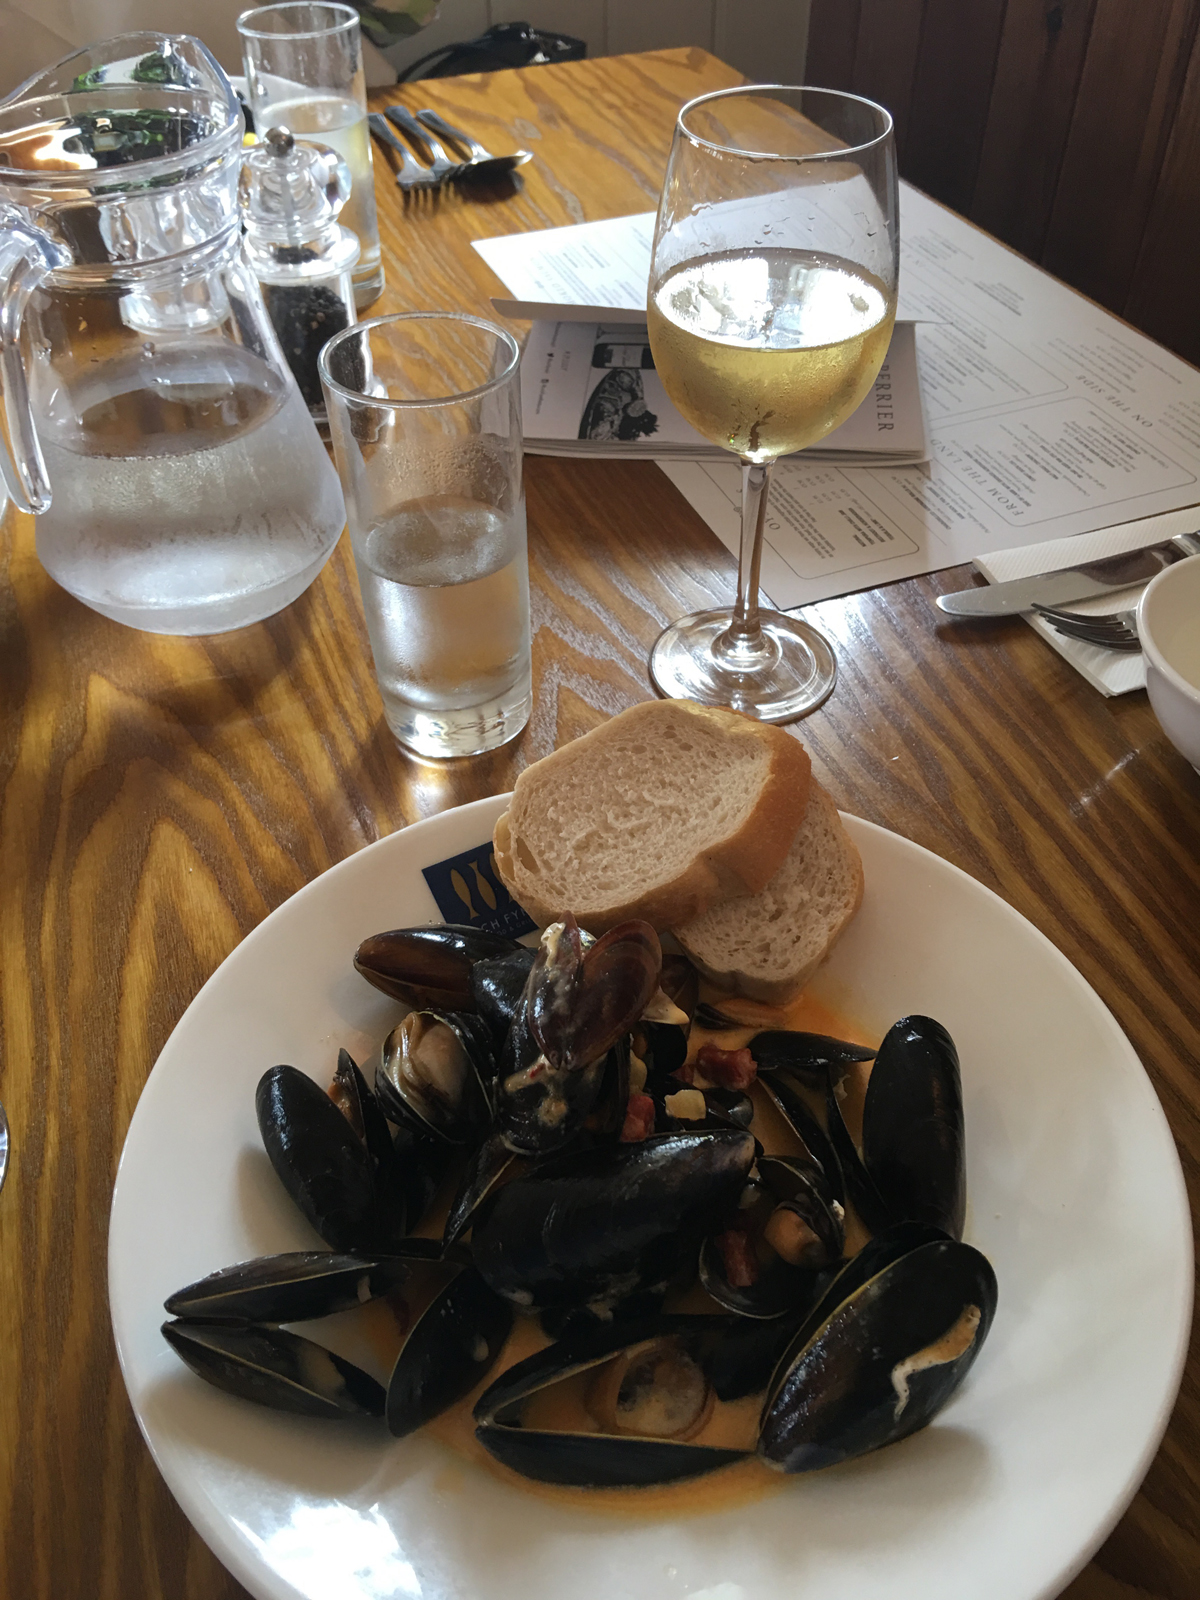 Barbara Segall and Marcus Harpur's seafood lunch at Loch Fyne in Elton